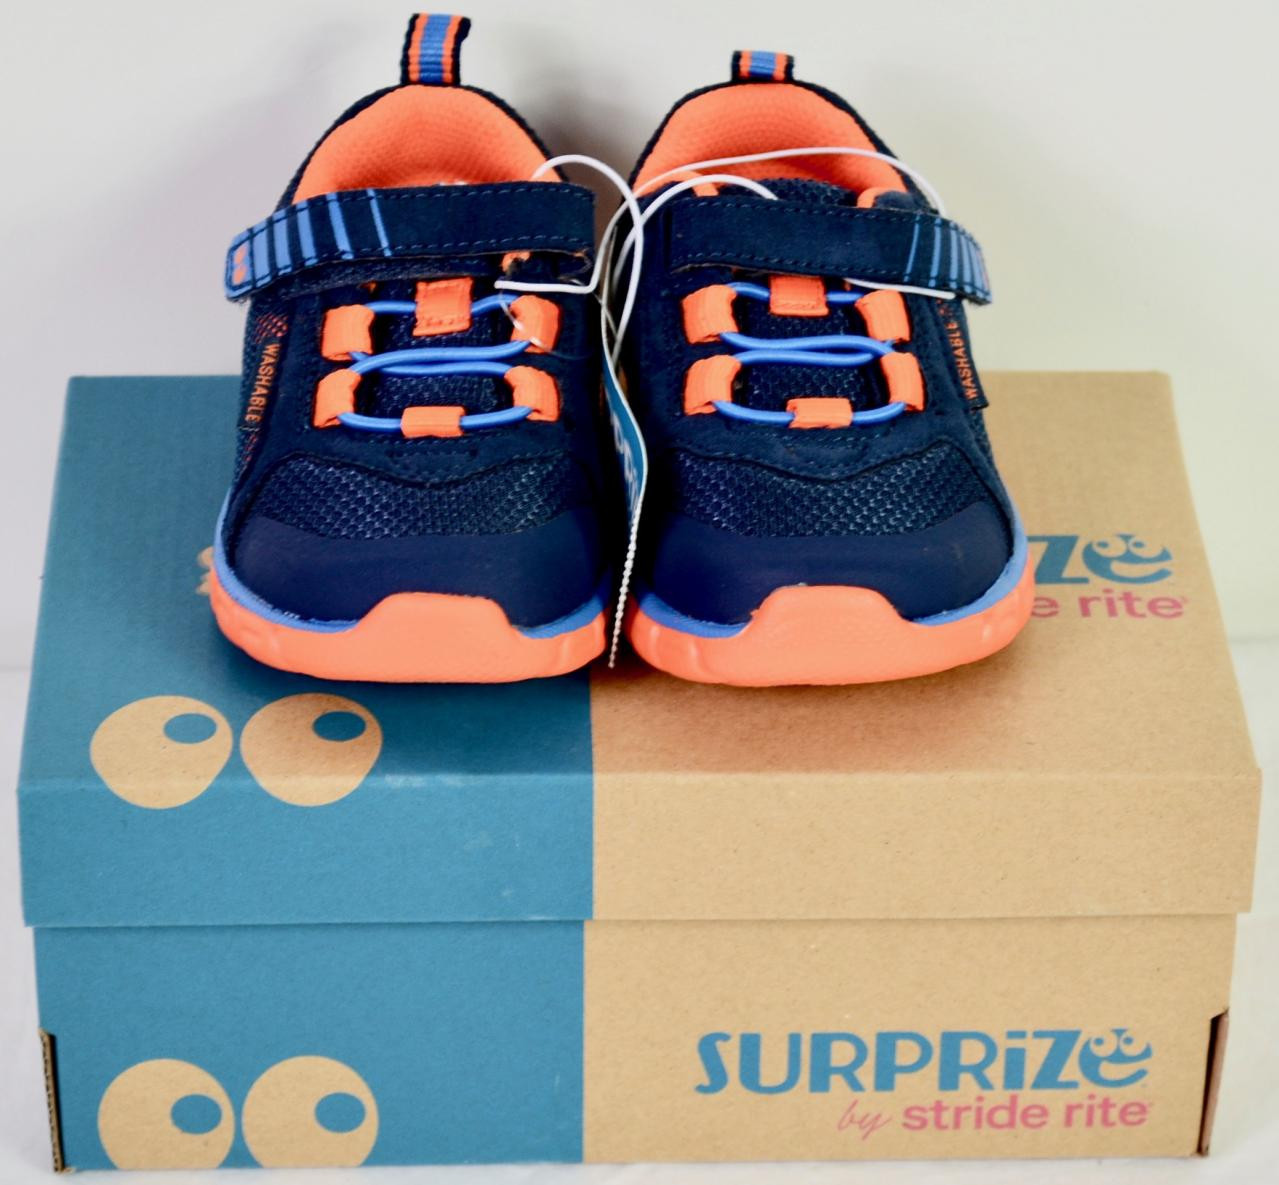 Surprize by Stride Rite Toddler Boys